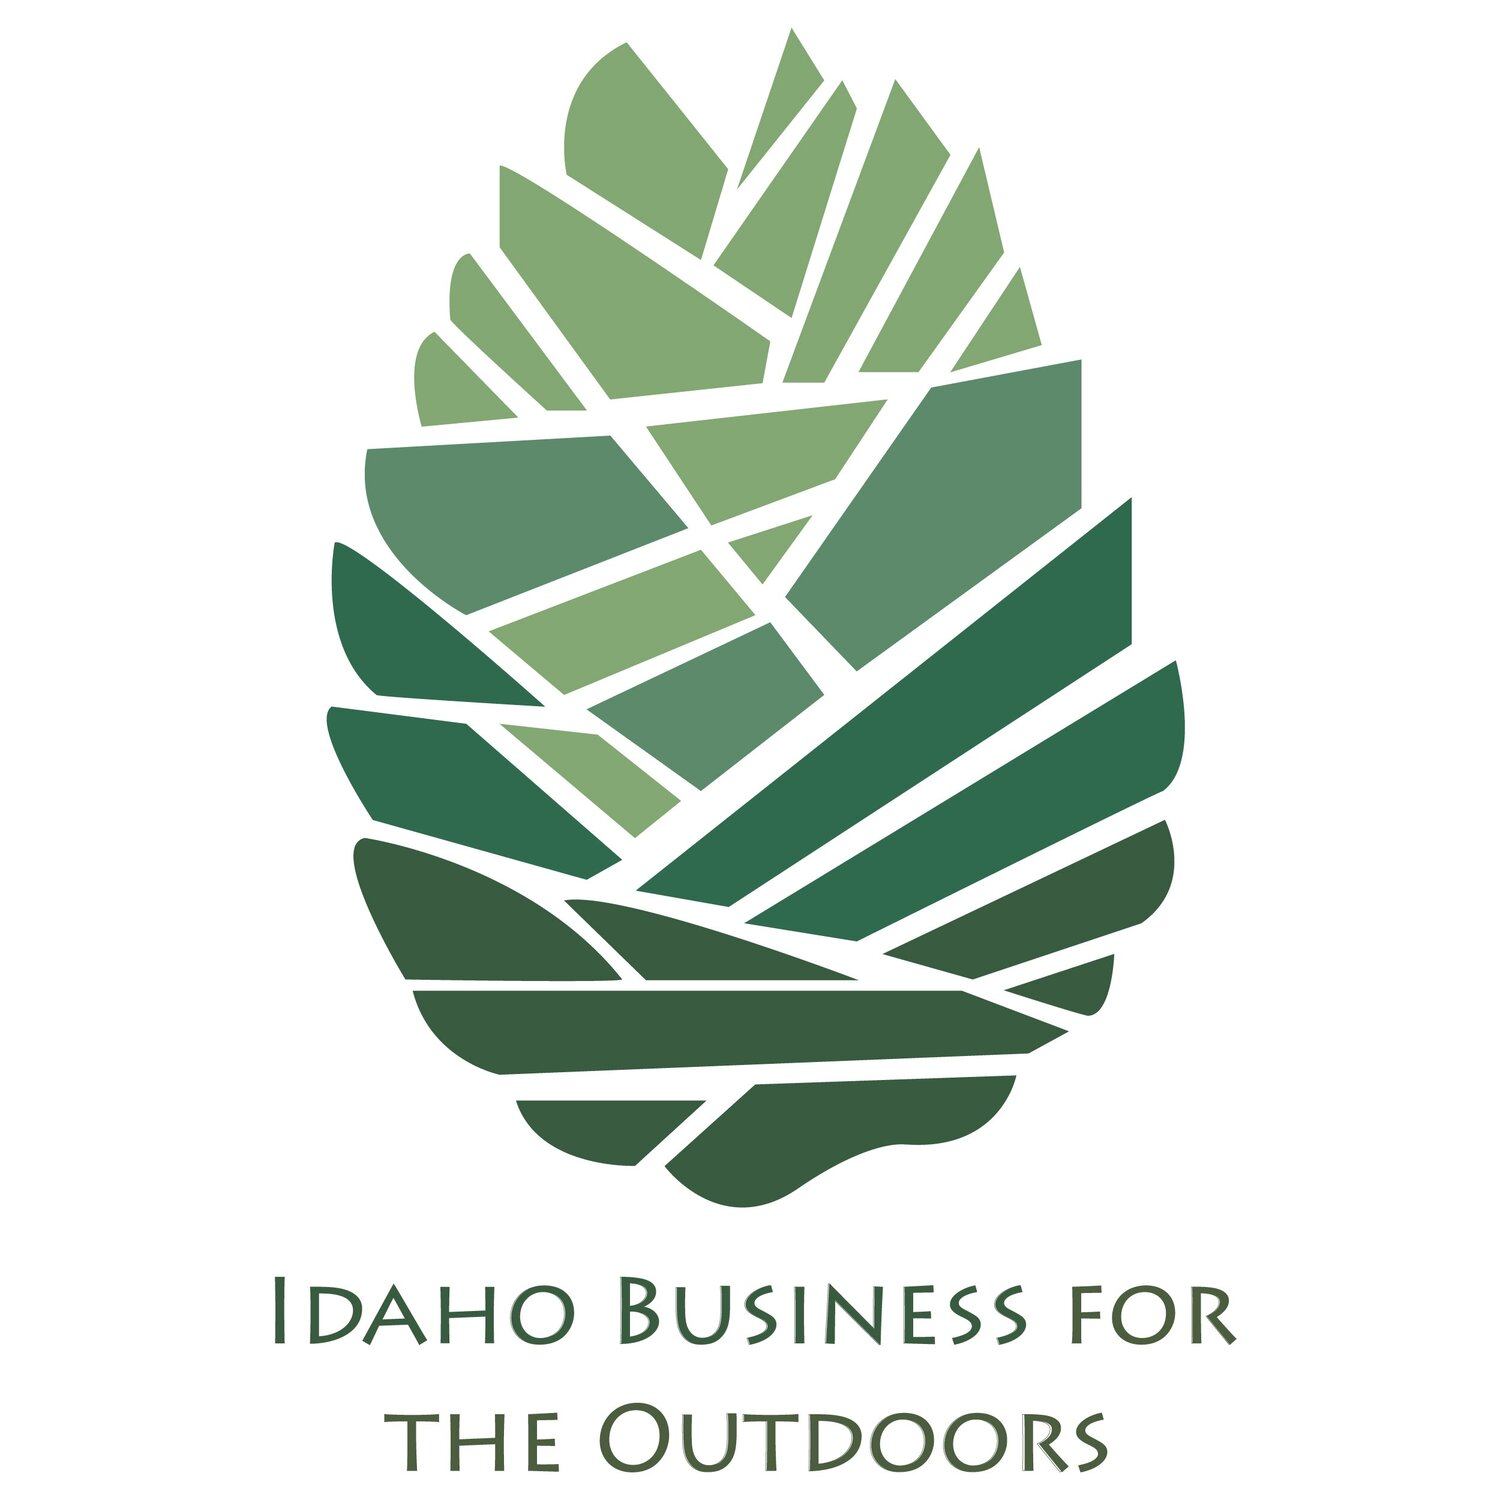 Idaho Business For The Outdoors